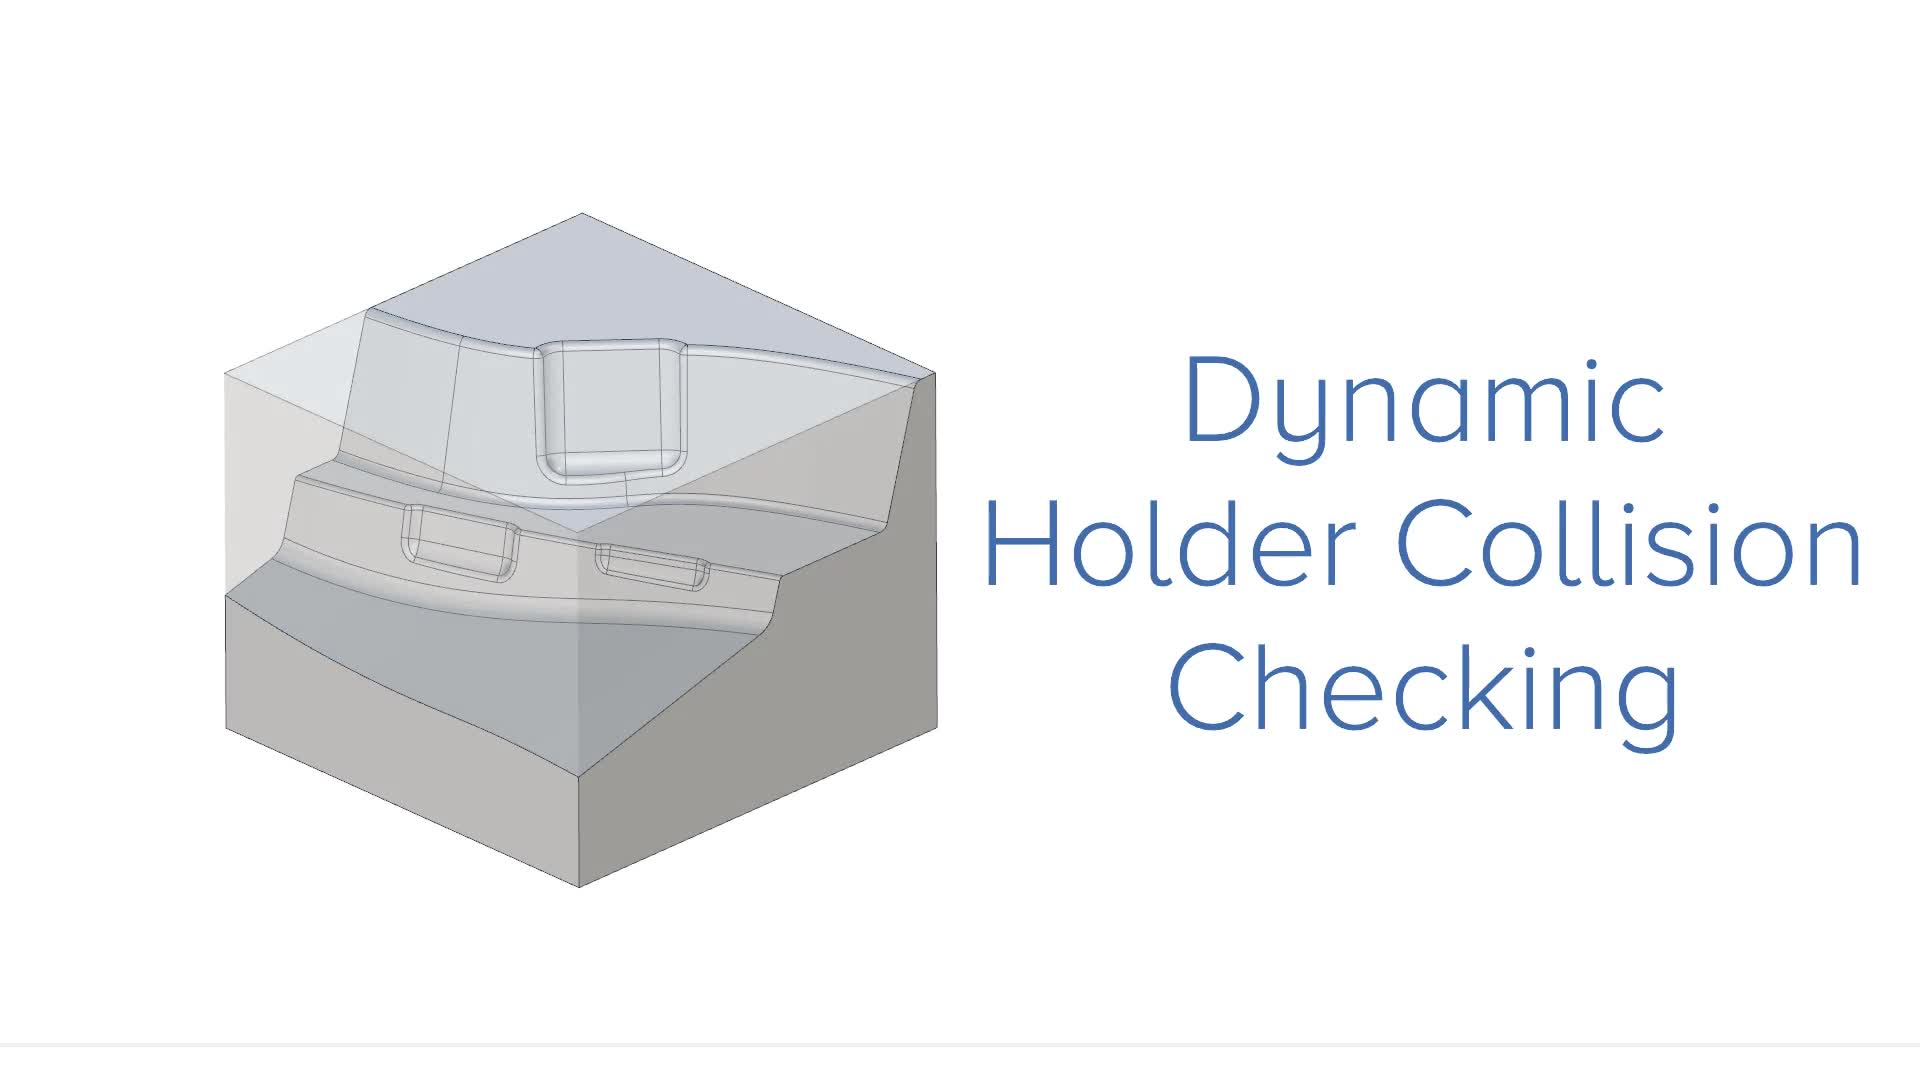 Dynamic Holder Collision Checking